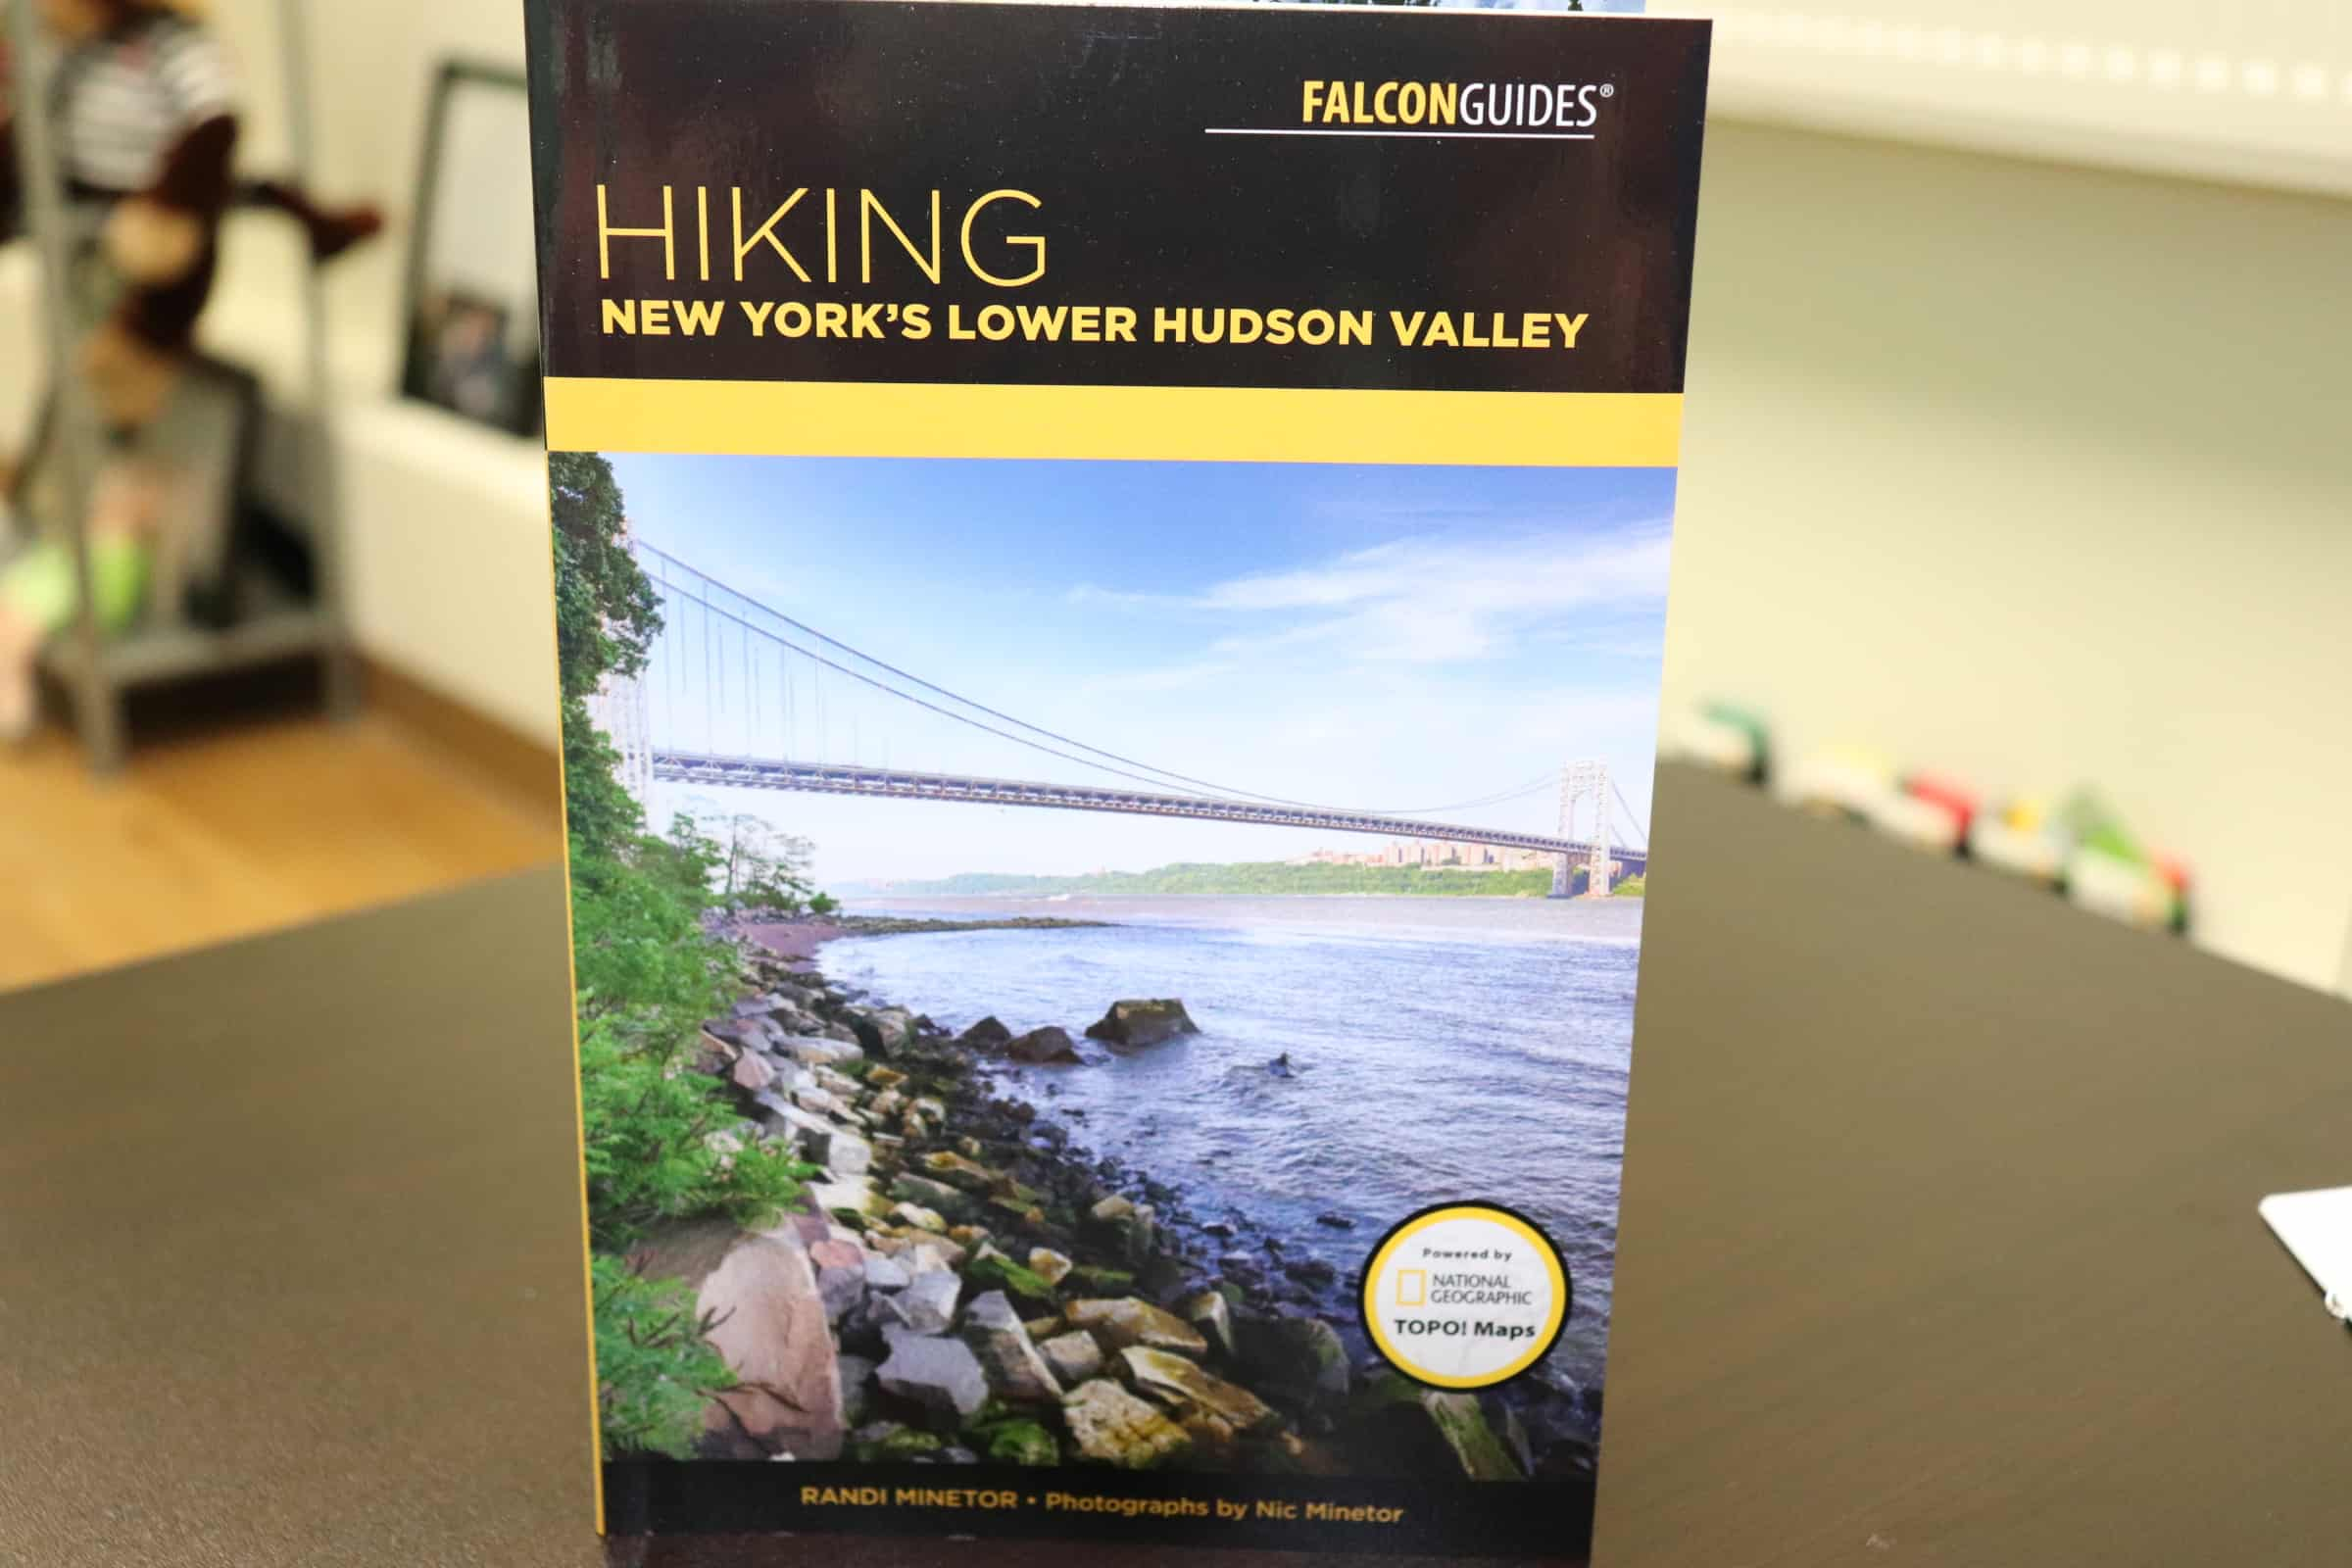 Hiking New York's Lower Hudson Valley by Randi Minetor